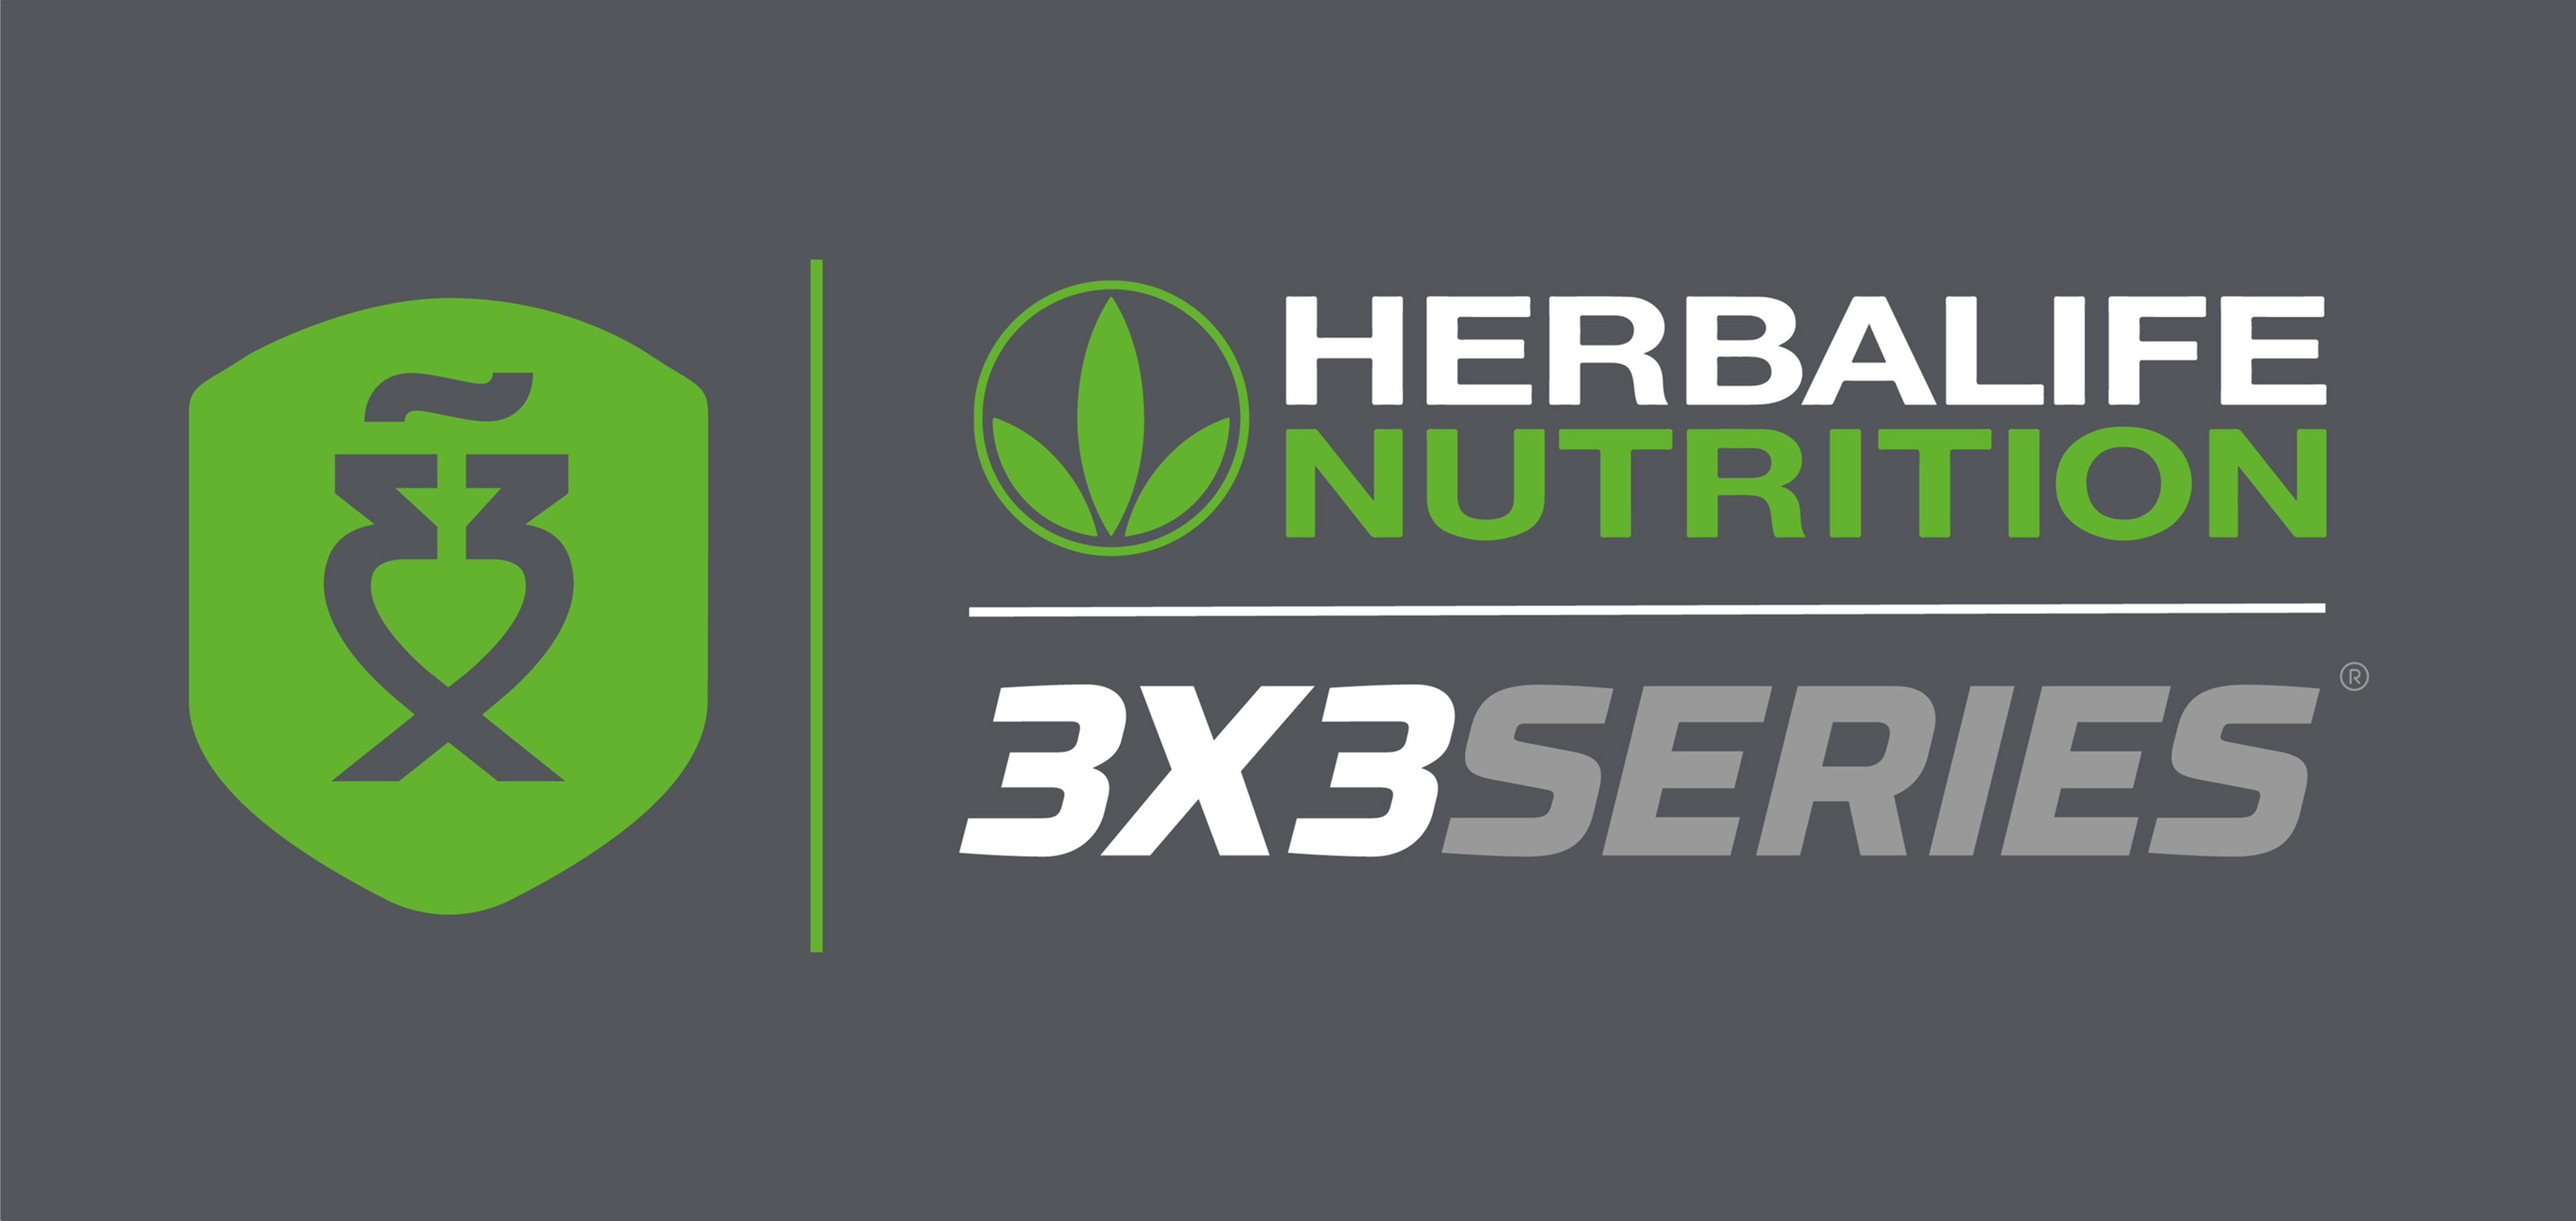 Herbalife Nutrition 3x3 Series